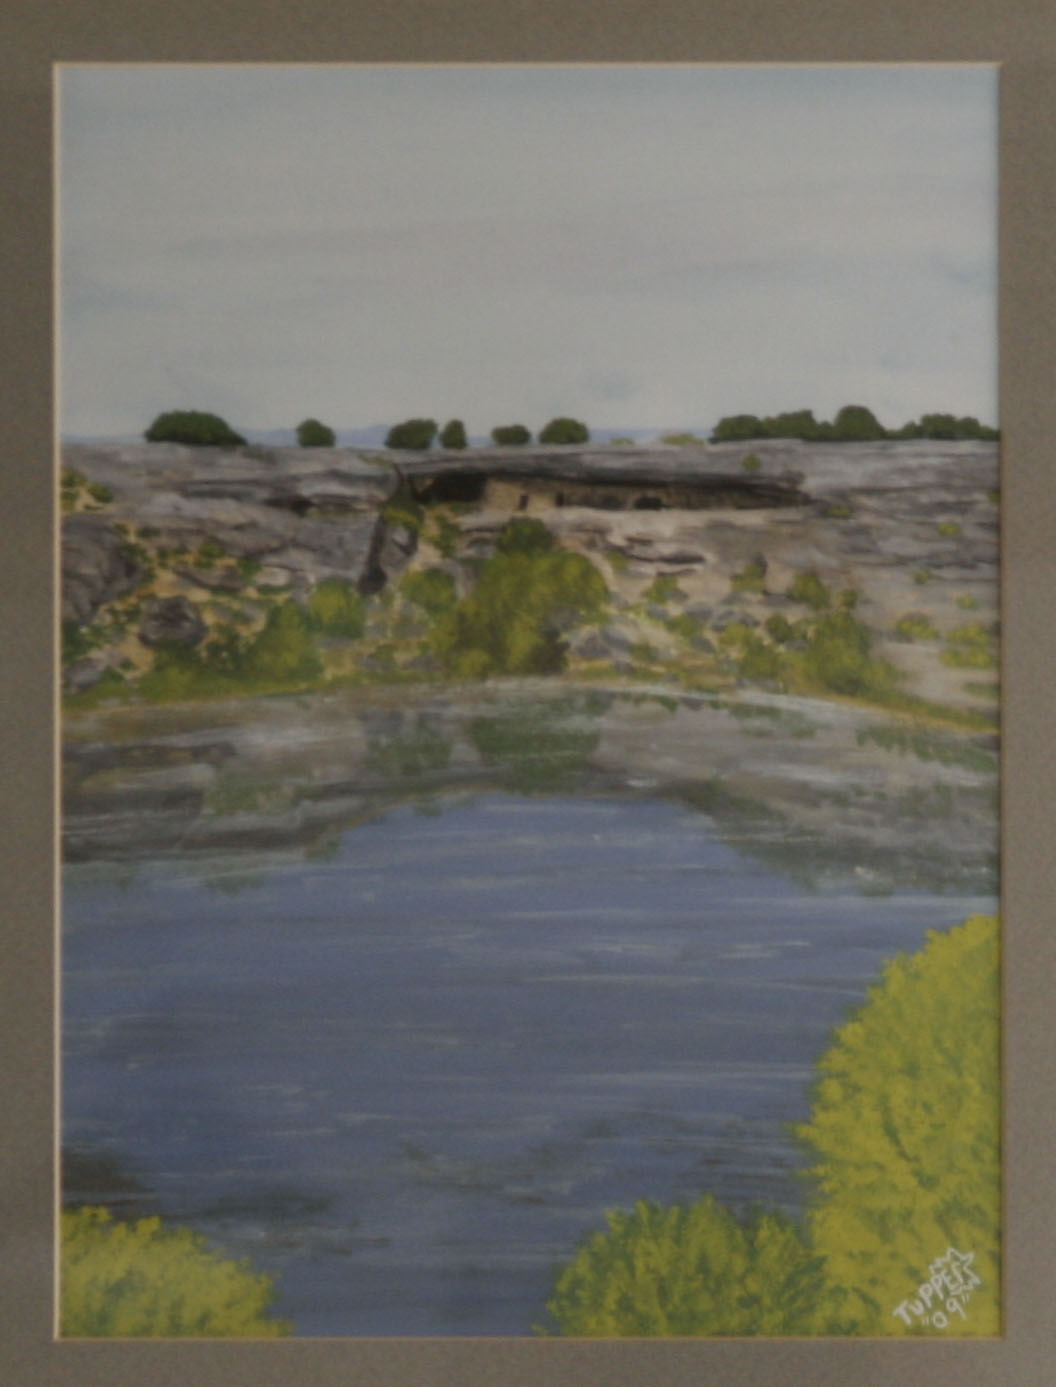 Montezuma Well by the hand of Tupper